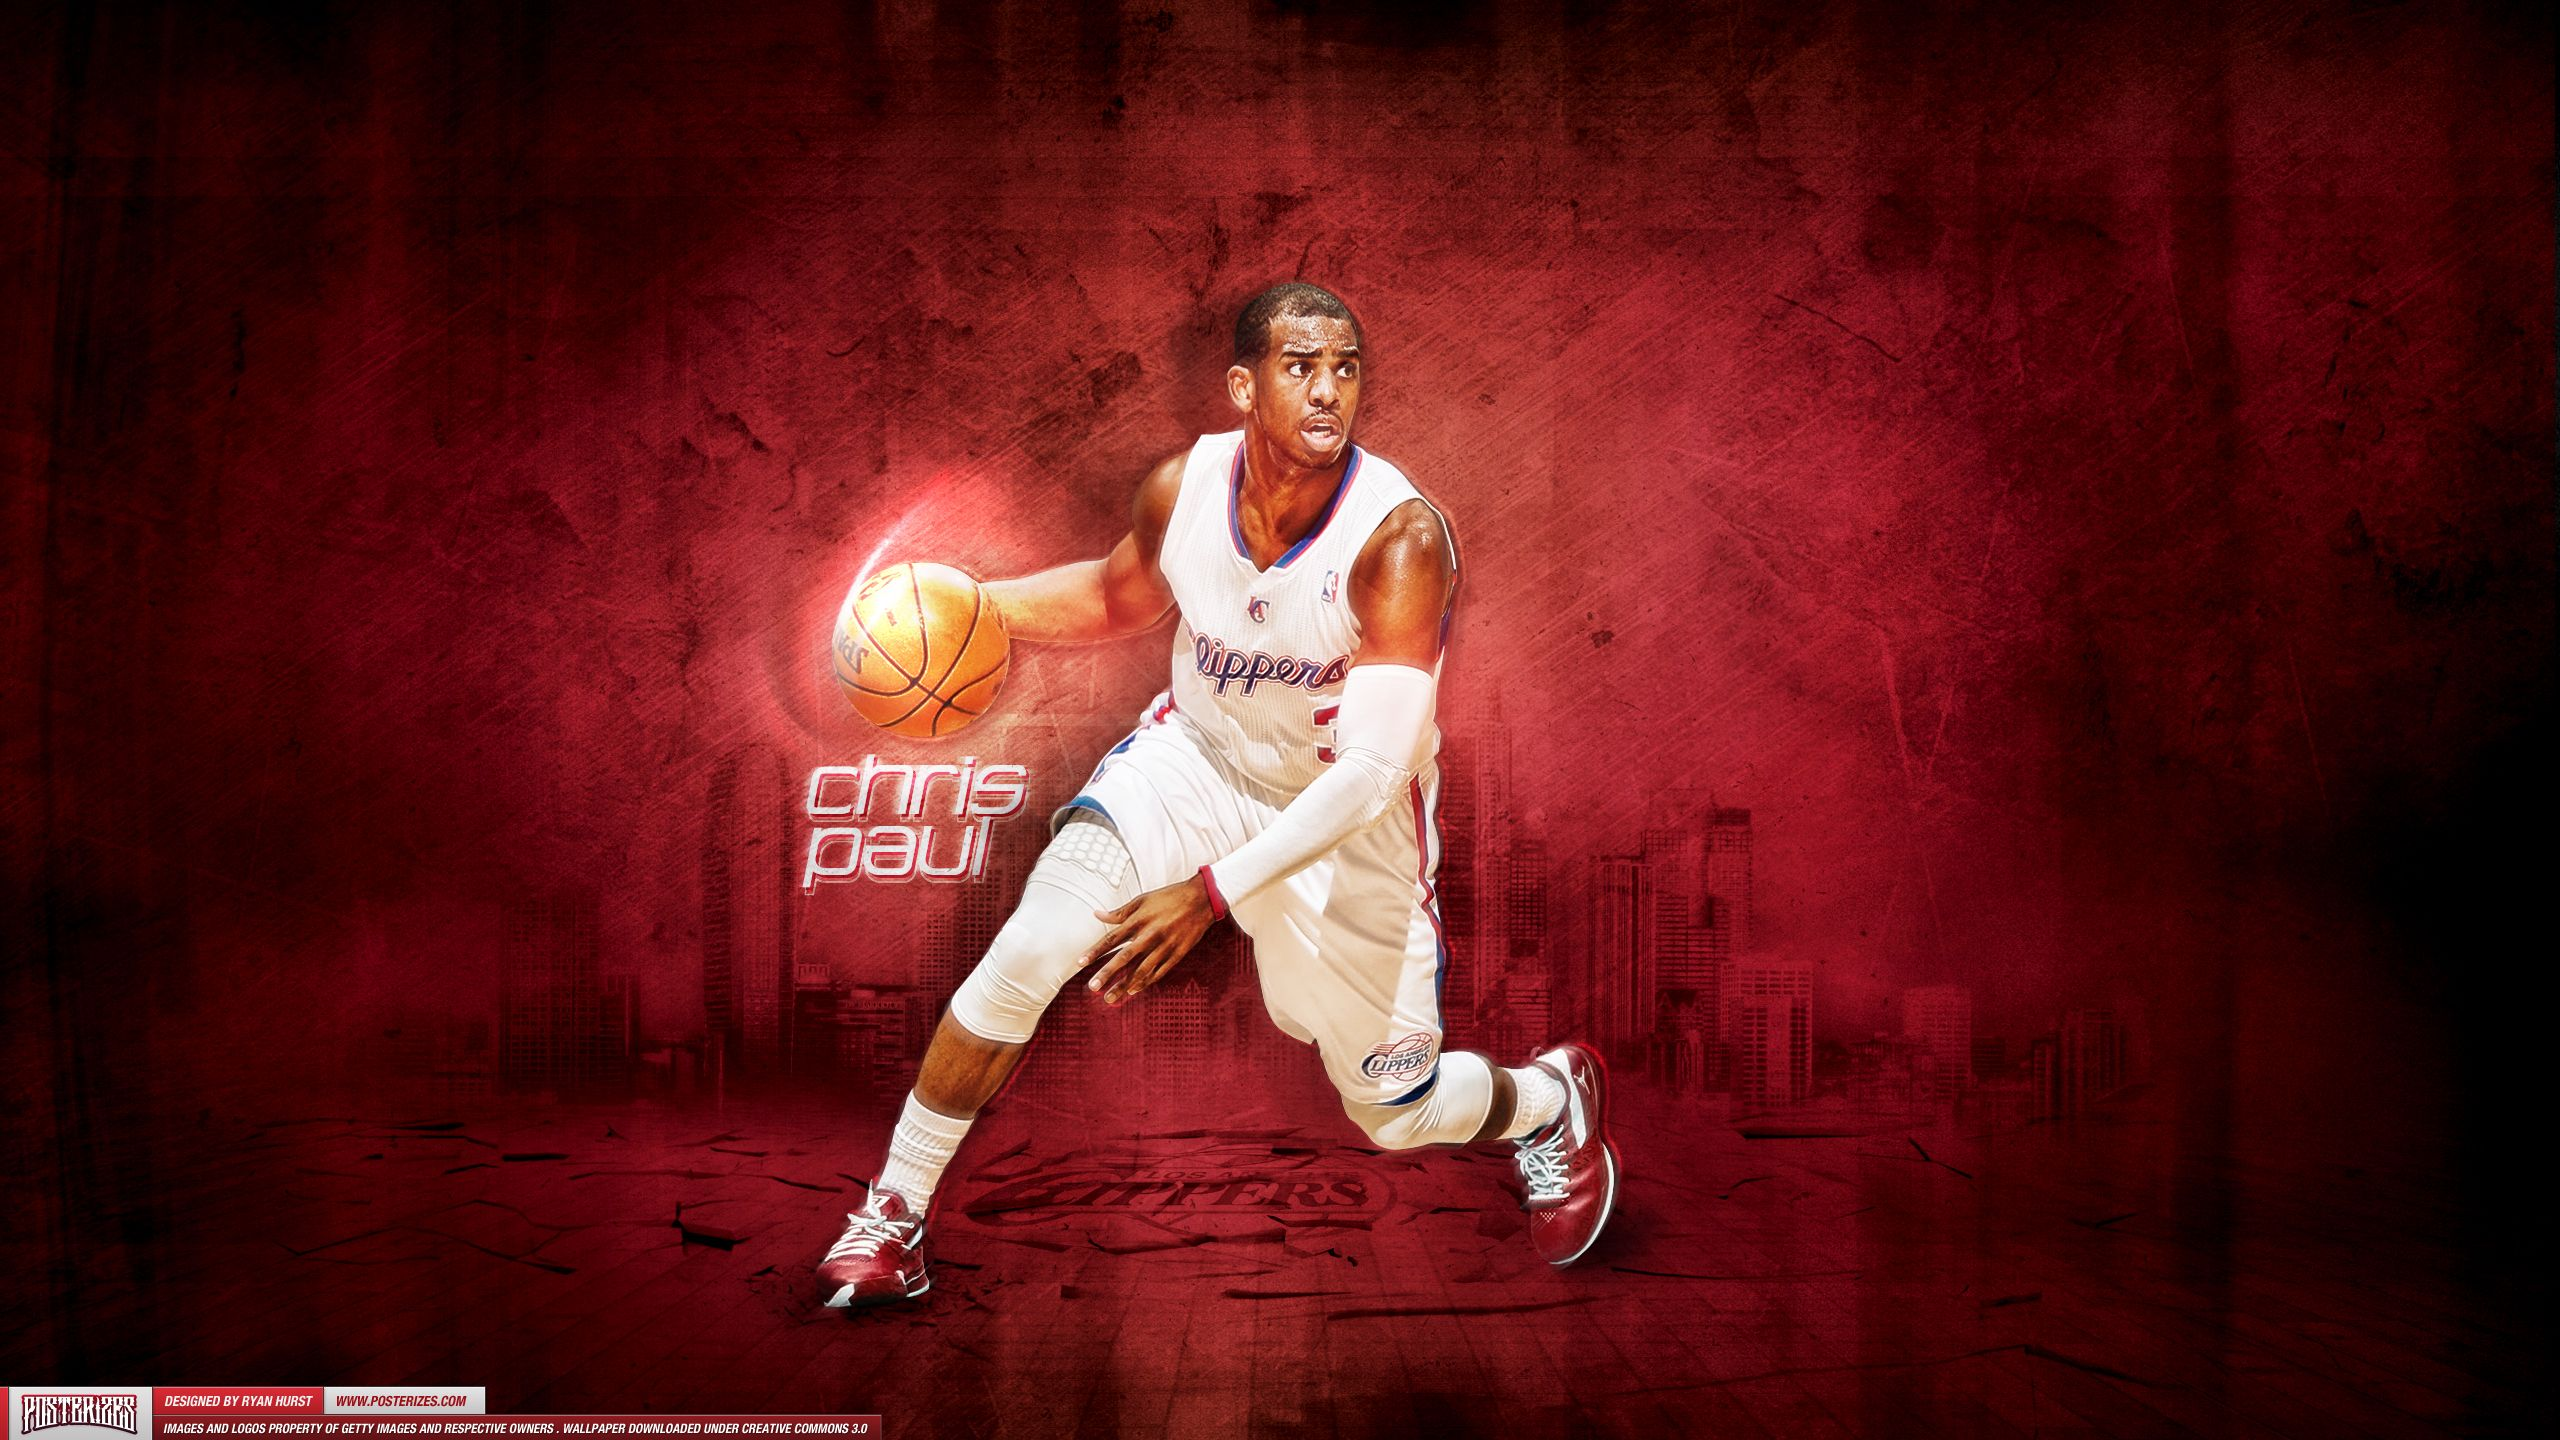 Chris Paul Wallpapers High Resolution And Quality Download Chris Paul Chris Paul Nba Nba Champions